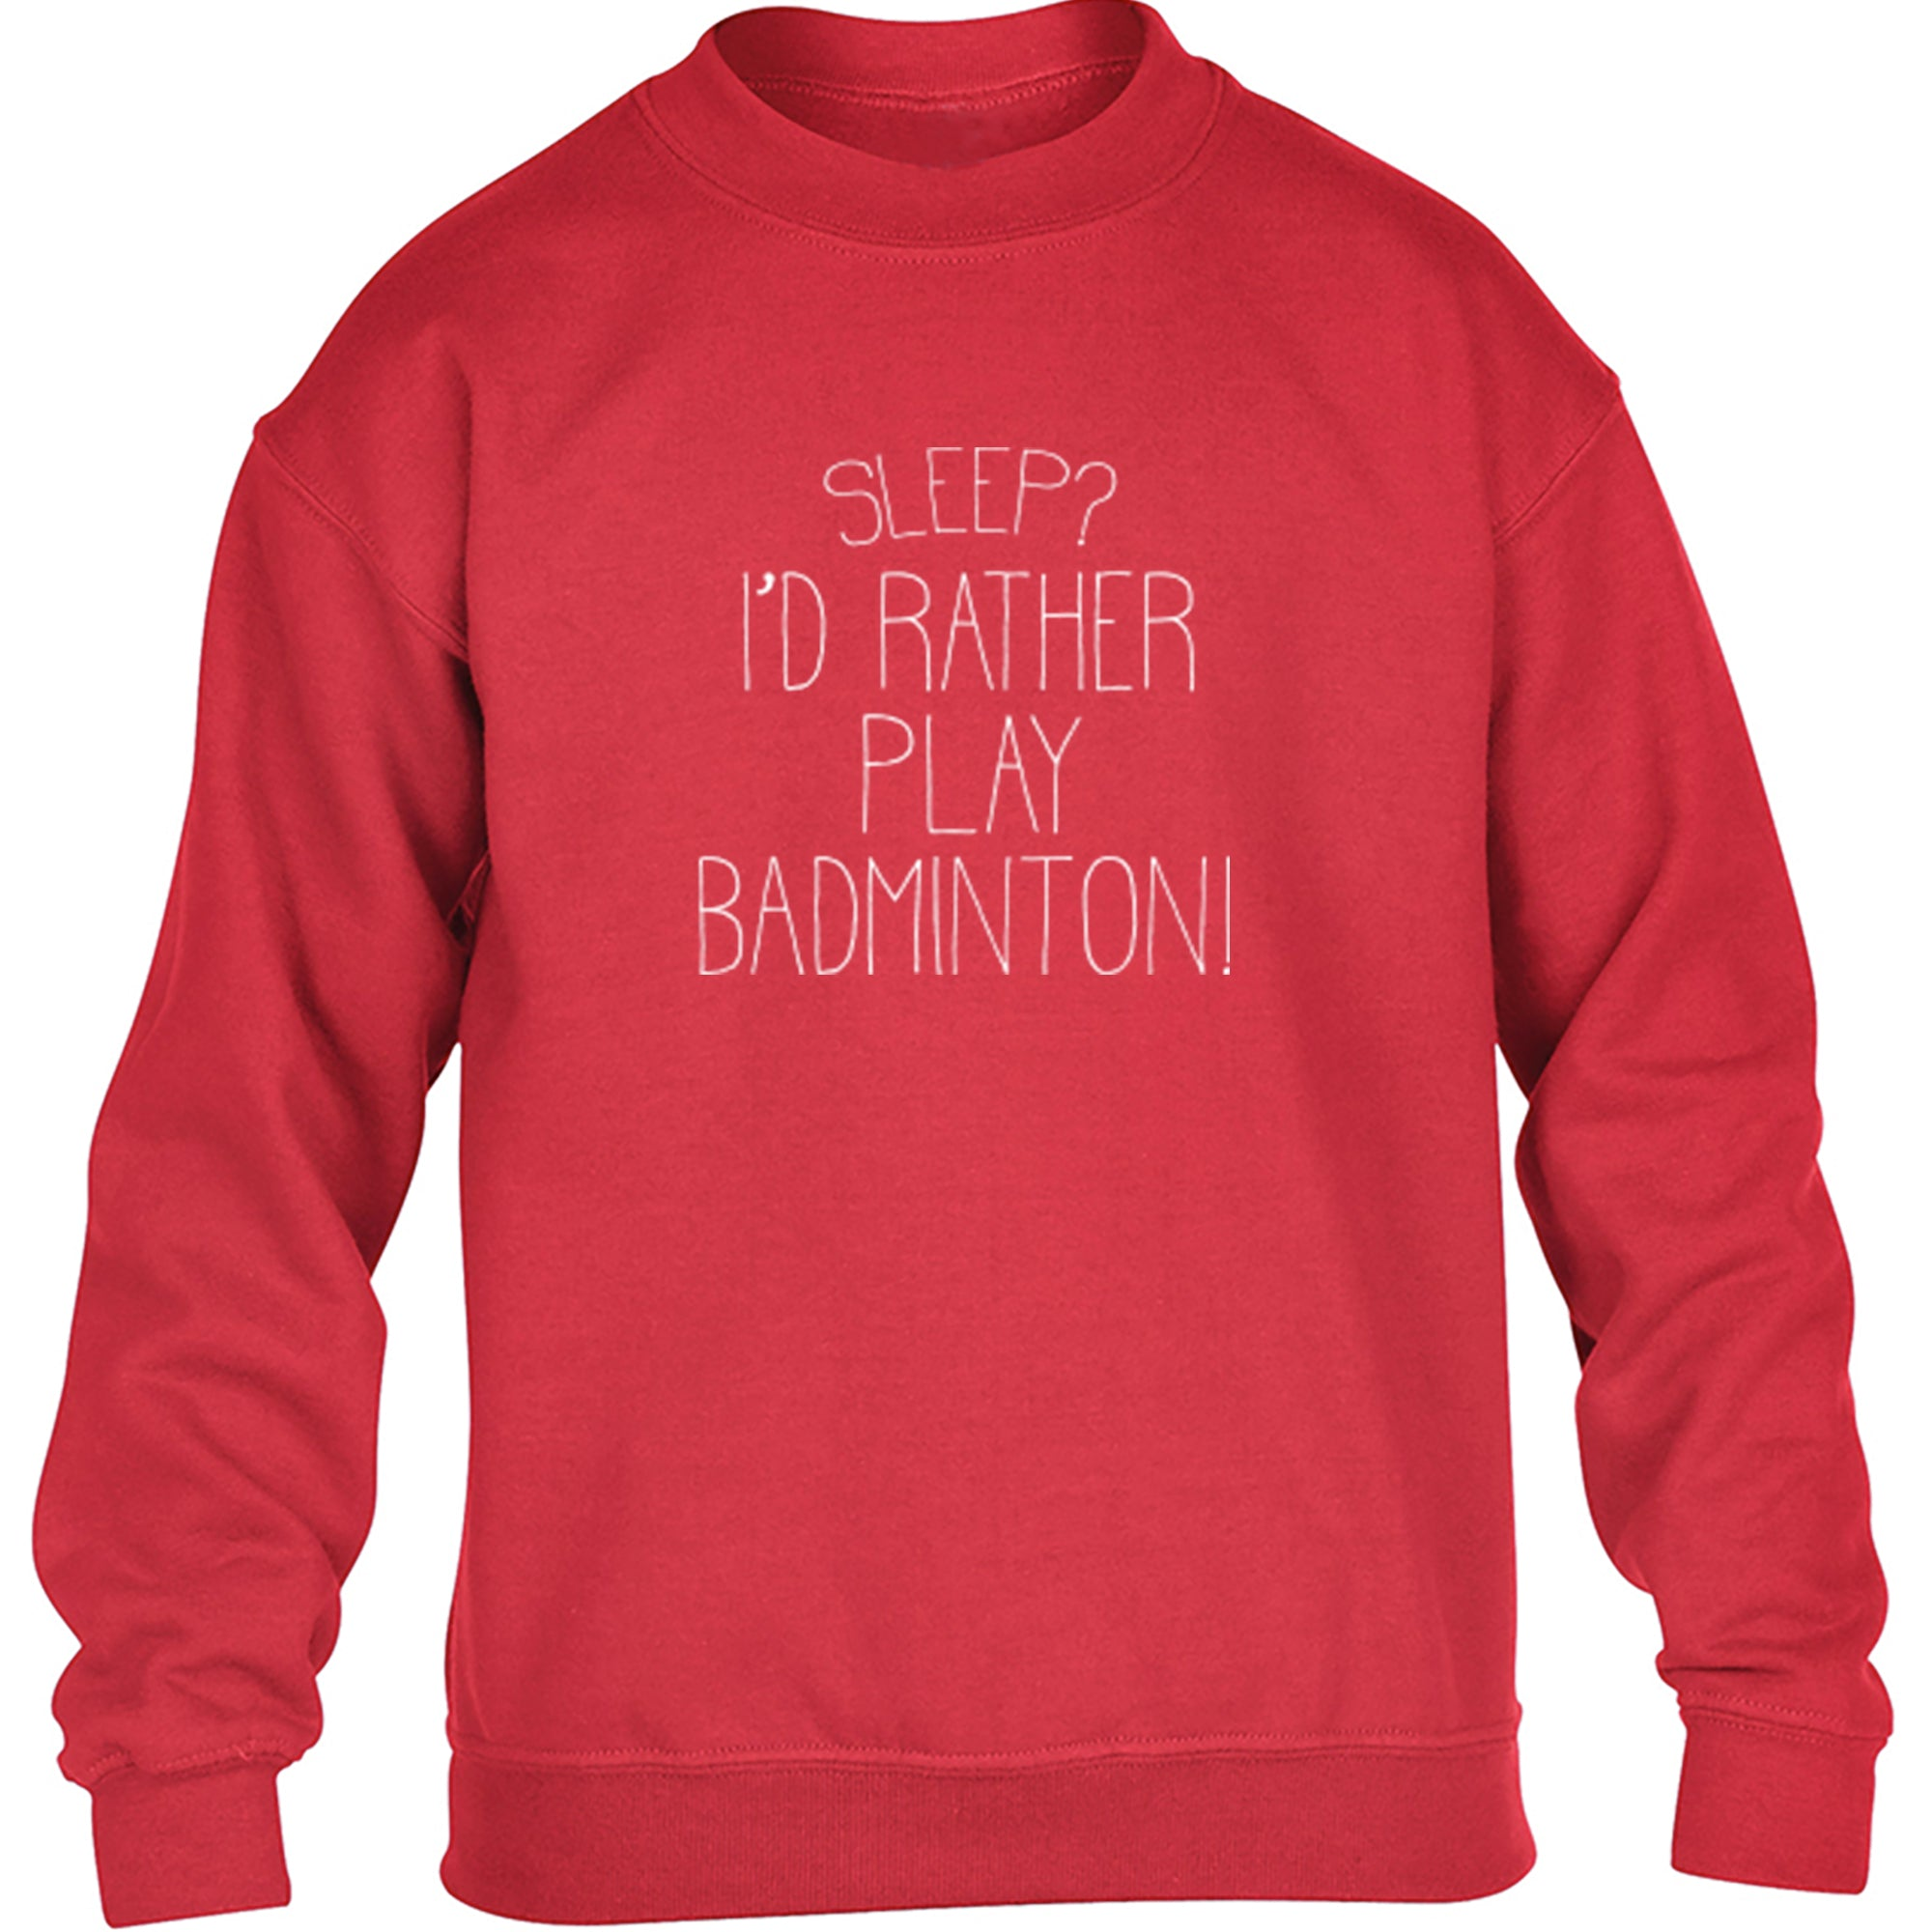 Sleep? I'd Rather Play Badminton! Childrens Ages 3/4-12/14 Unisex Jumper S0477 - Illustrated Identity Ltd.